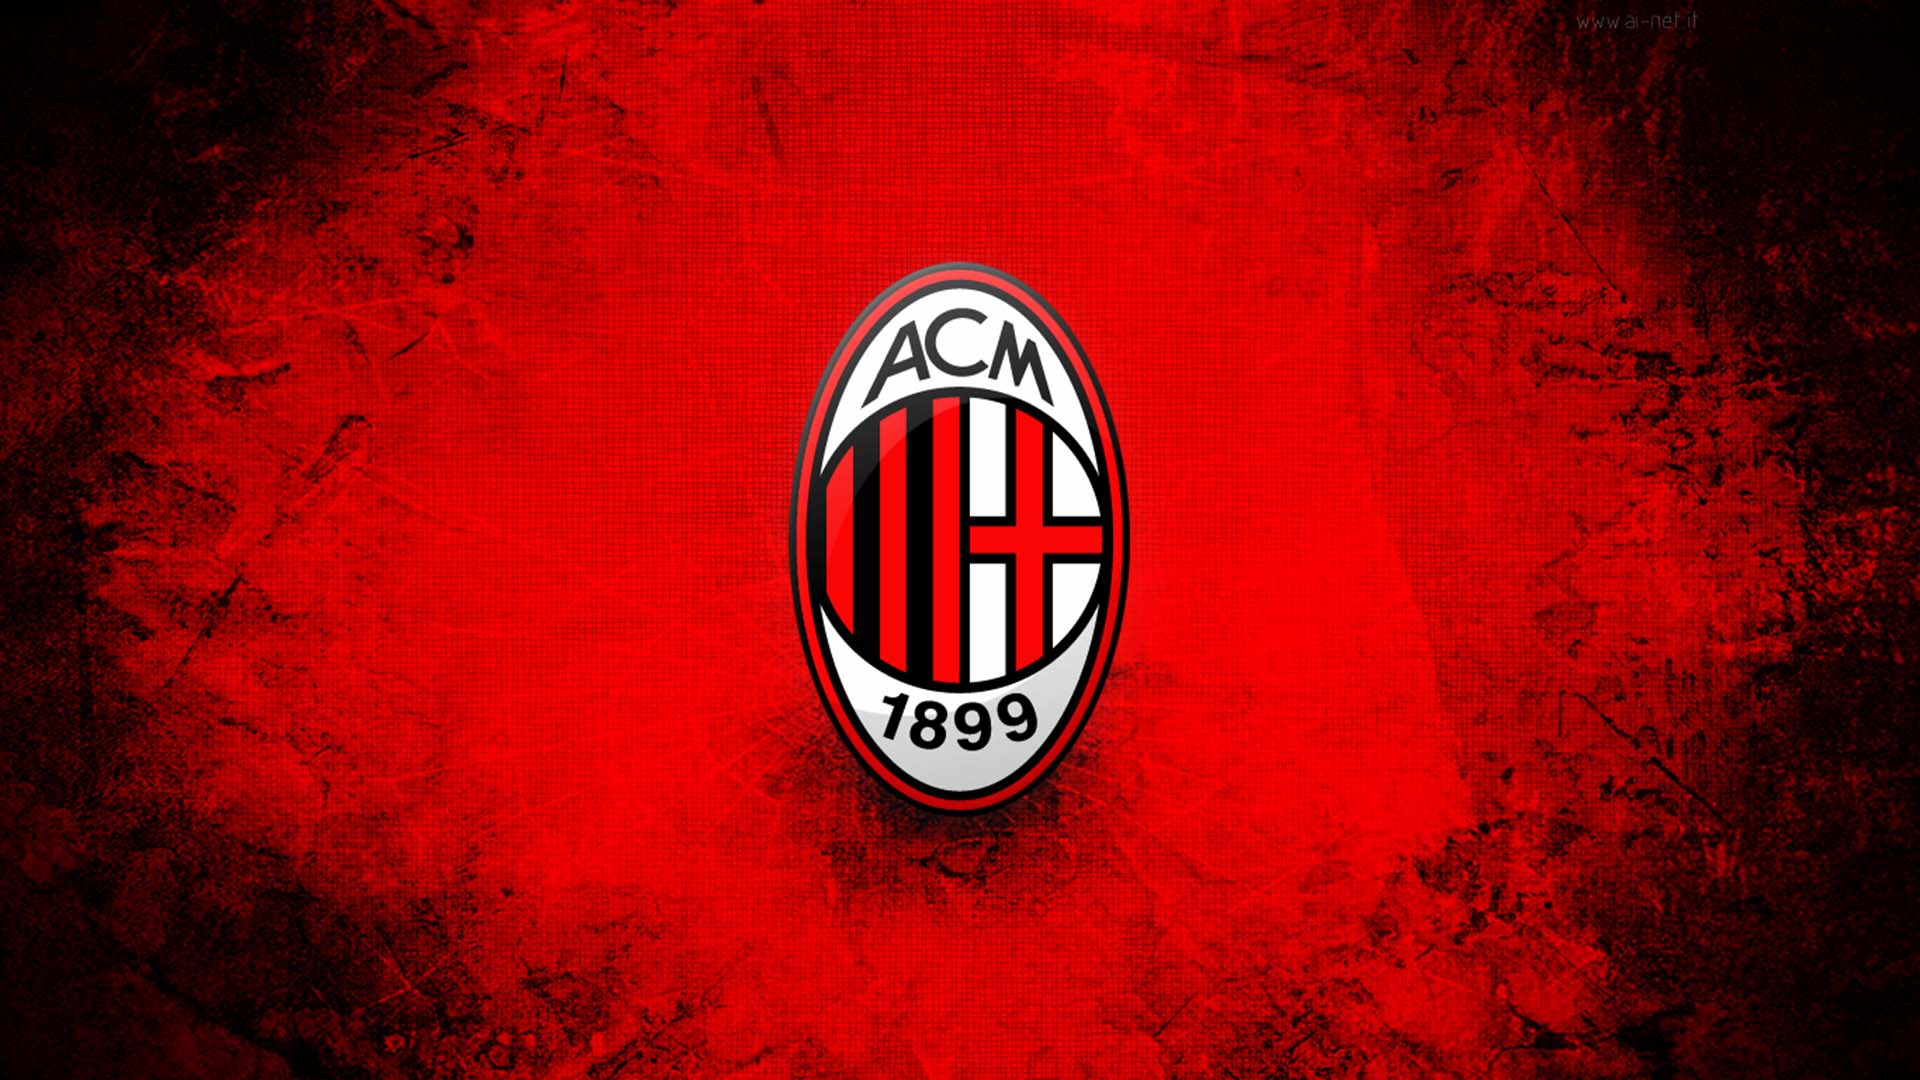 AC Milan Hd Wallpaper Wallpaper hd Sfondi hd 1920x1080